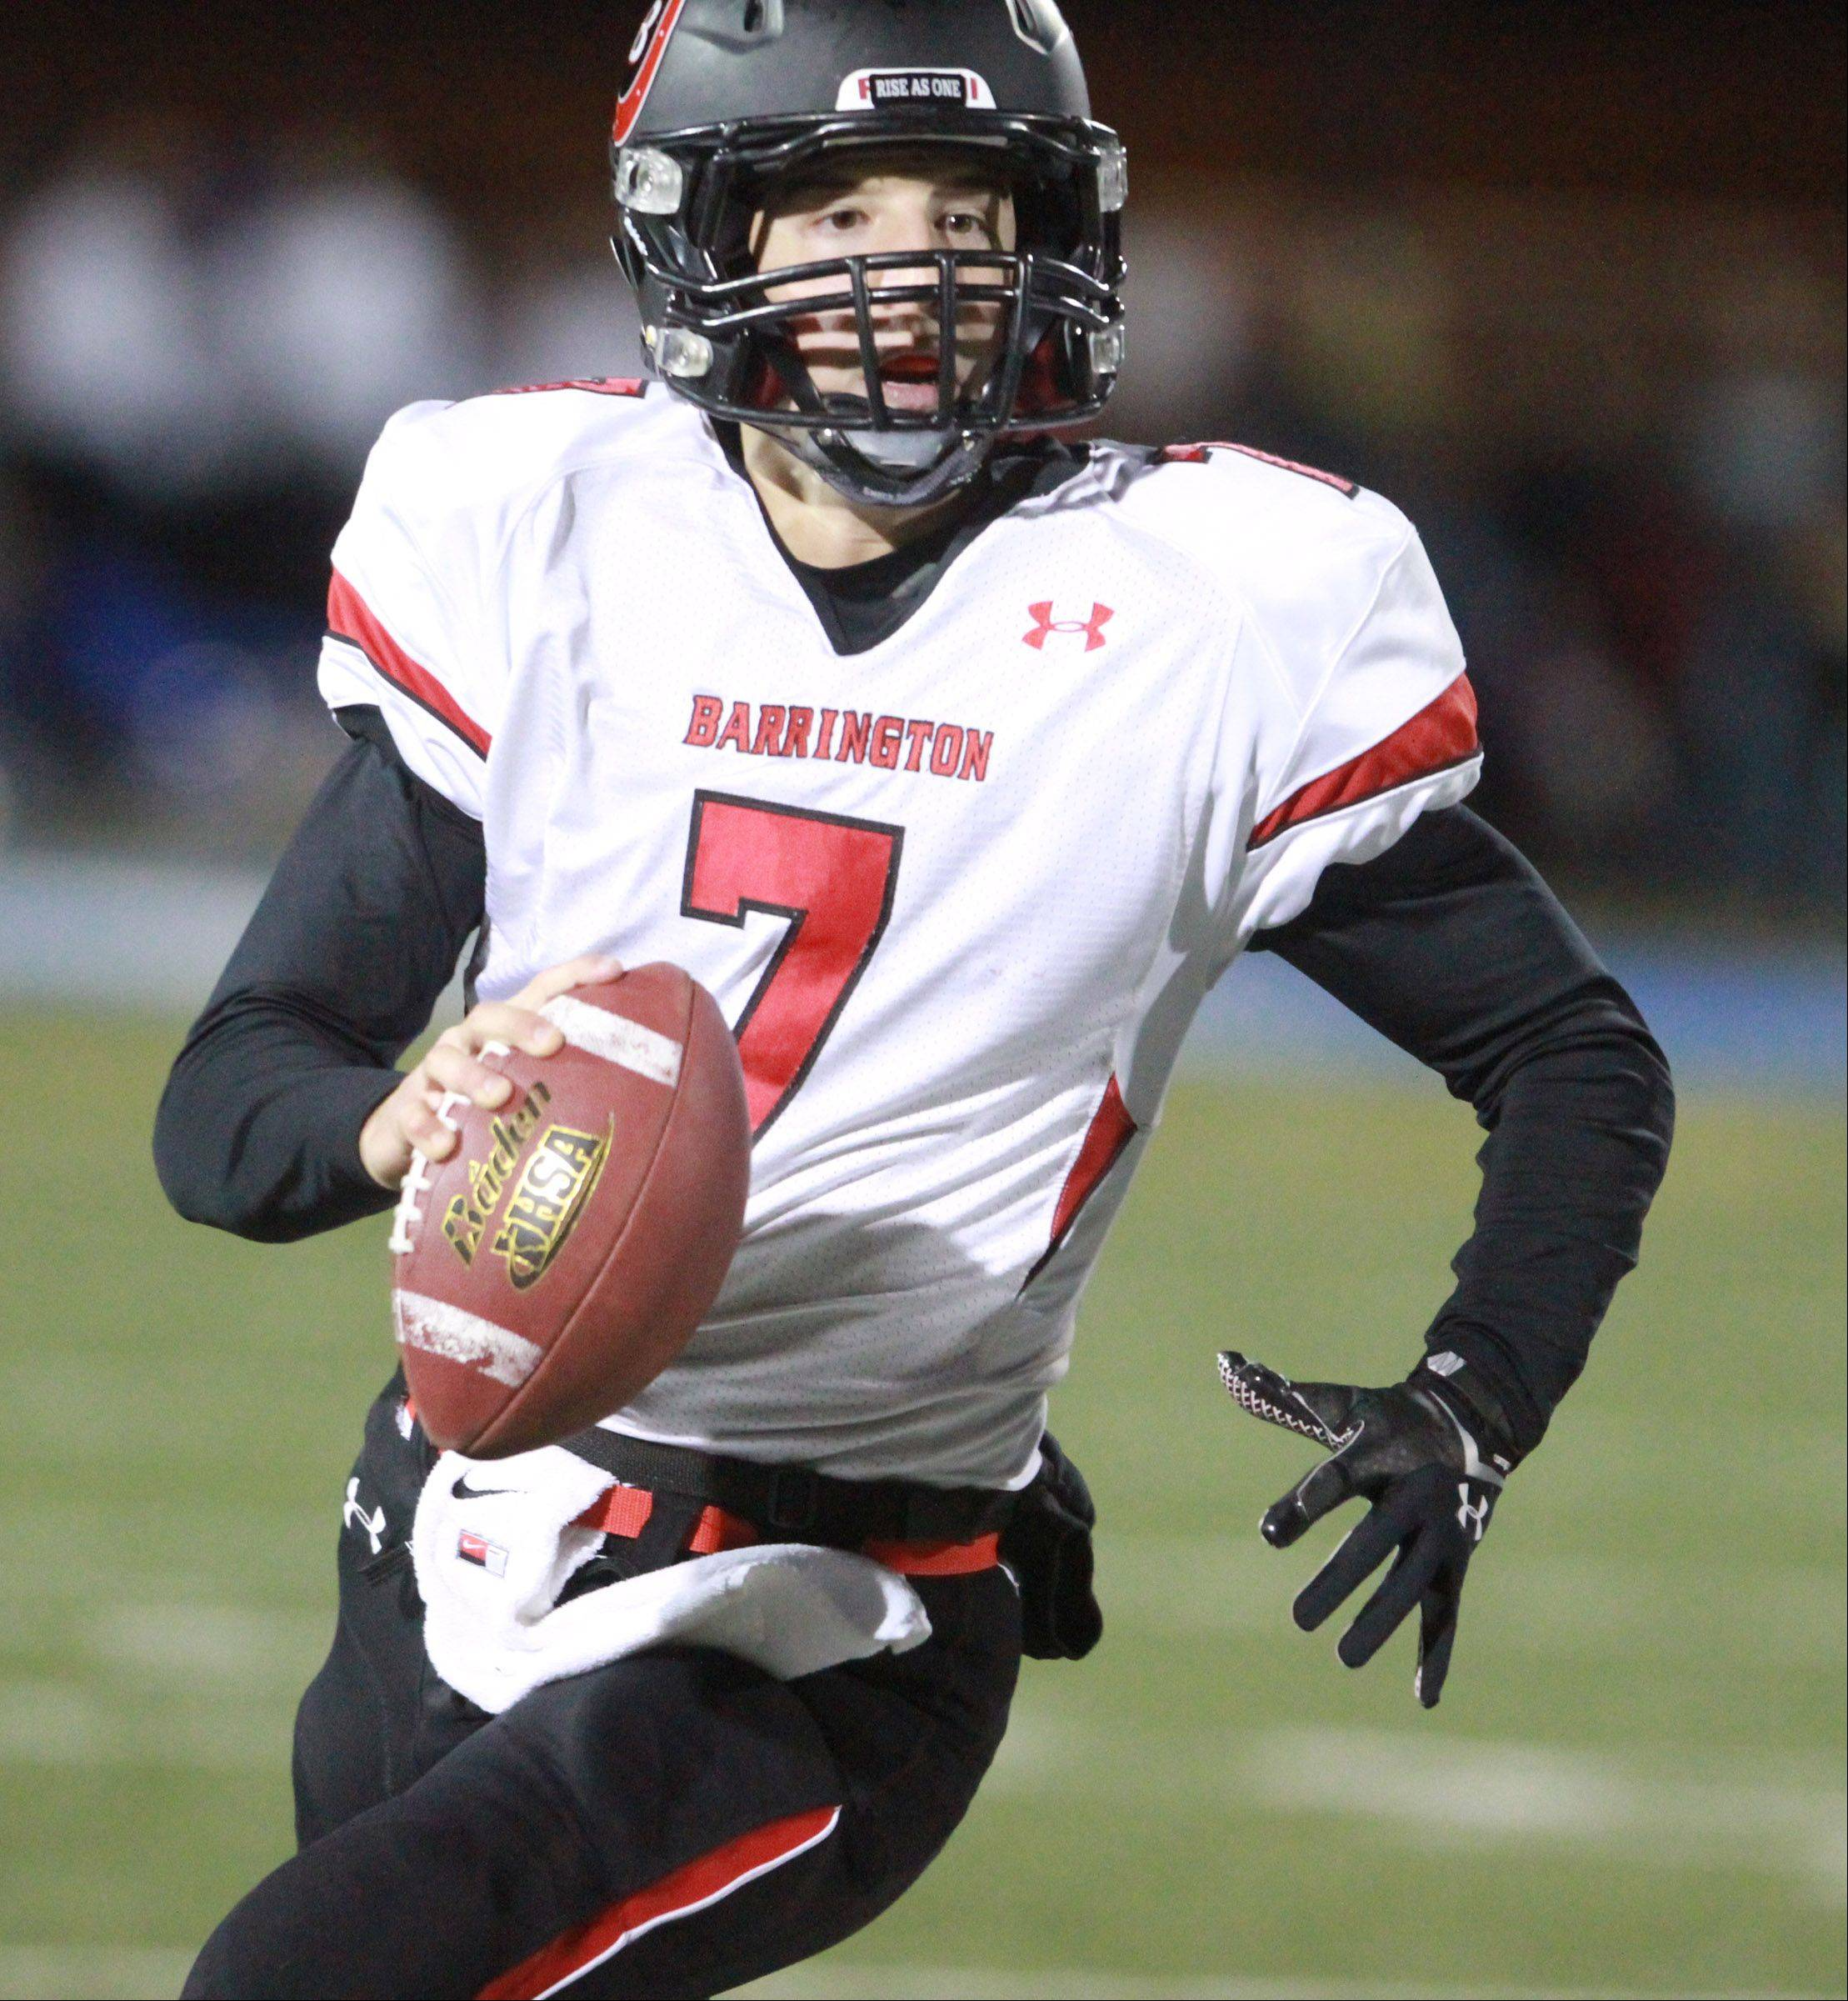 Barrington quarterback Daniel Kubluk looks for a receiver during Saturday's playoff game against Warren.